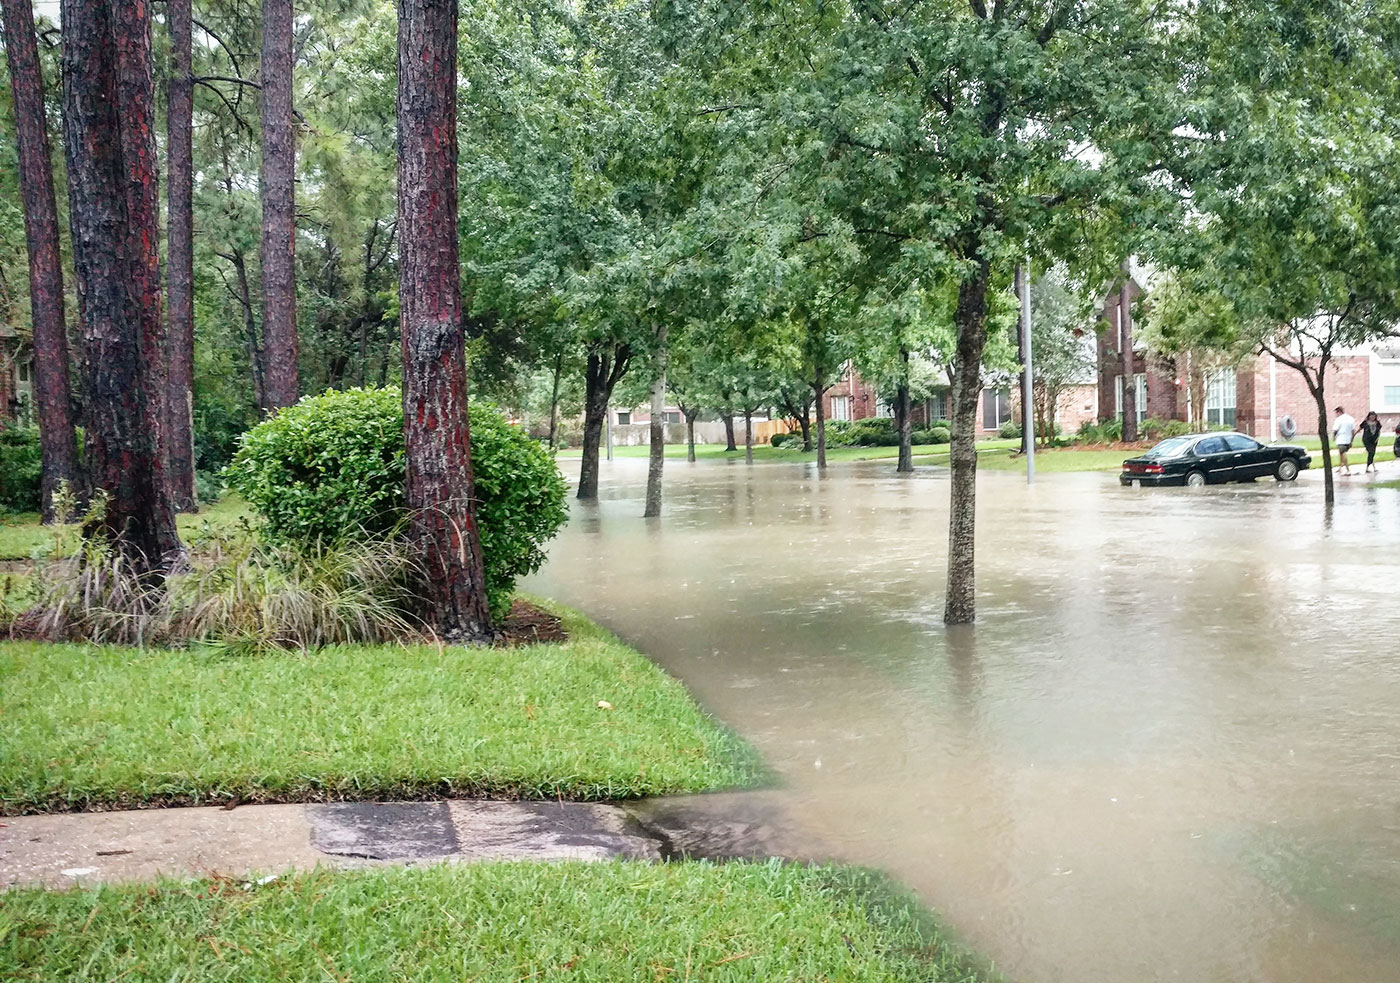 How Does a Natural or Declared Disaster Impact My Credit? article image.